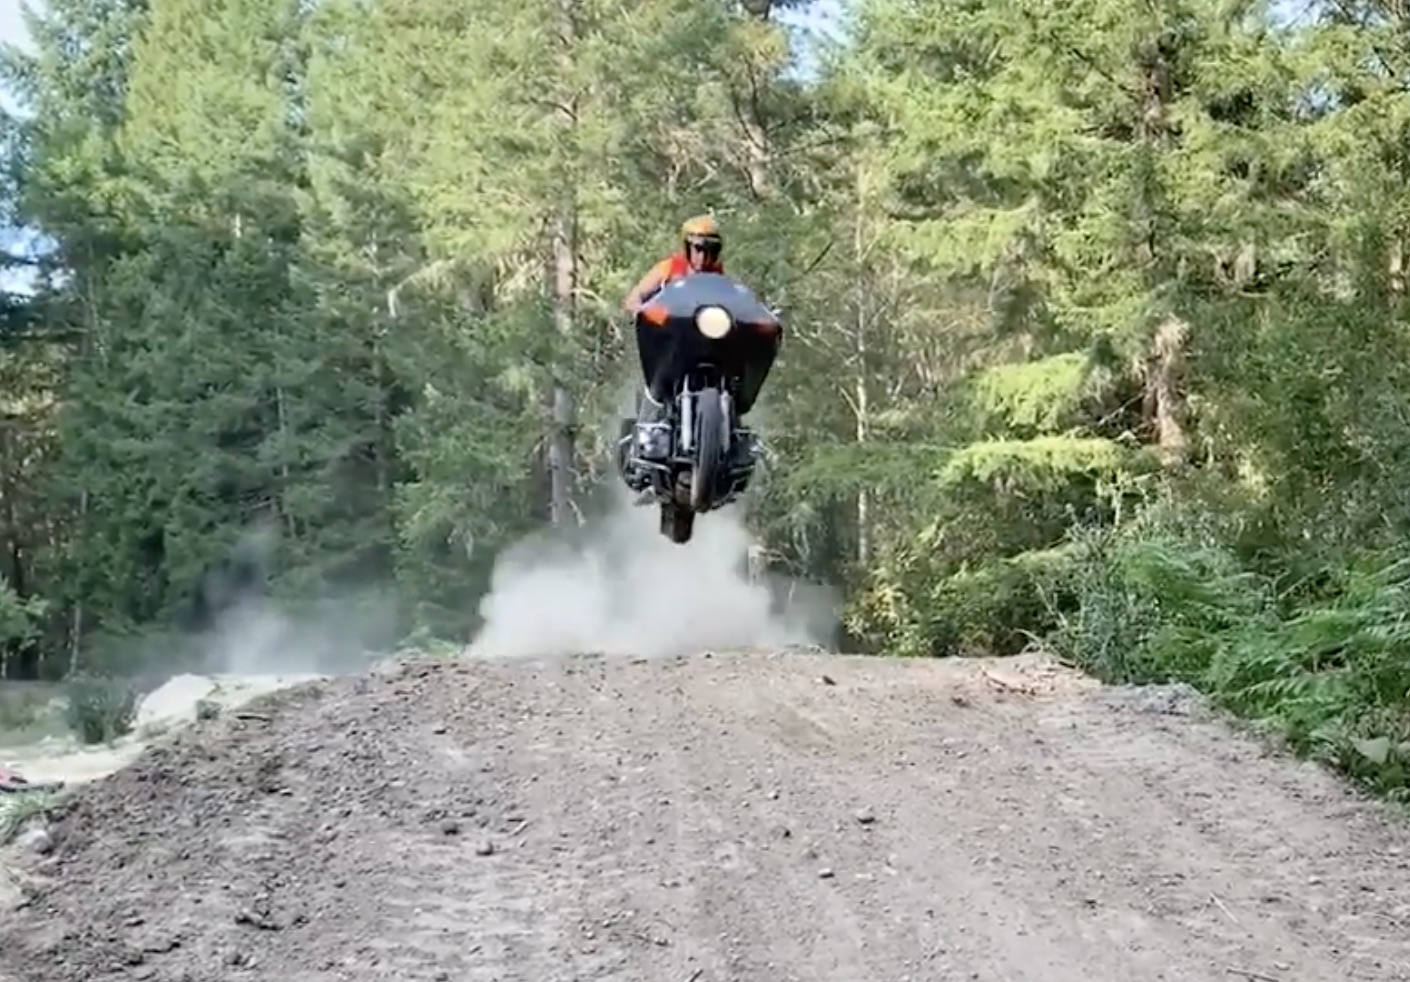 Hitting The Dusty Trail: Honda Gold Wings On A Motocross Track!